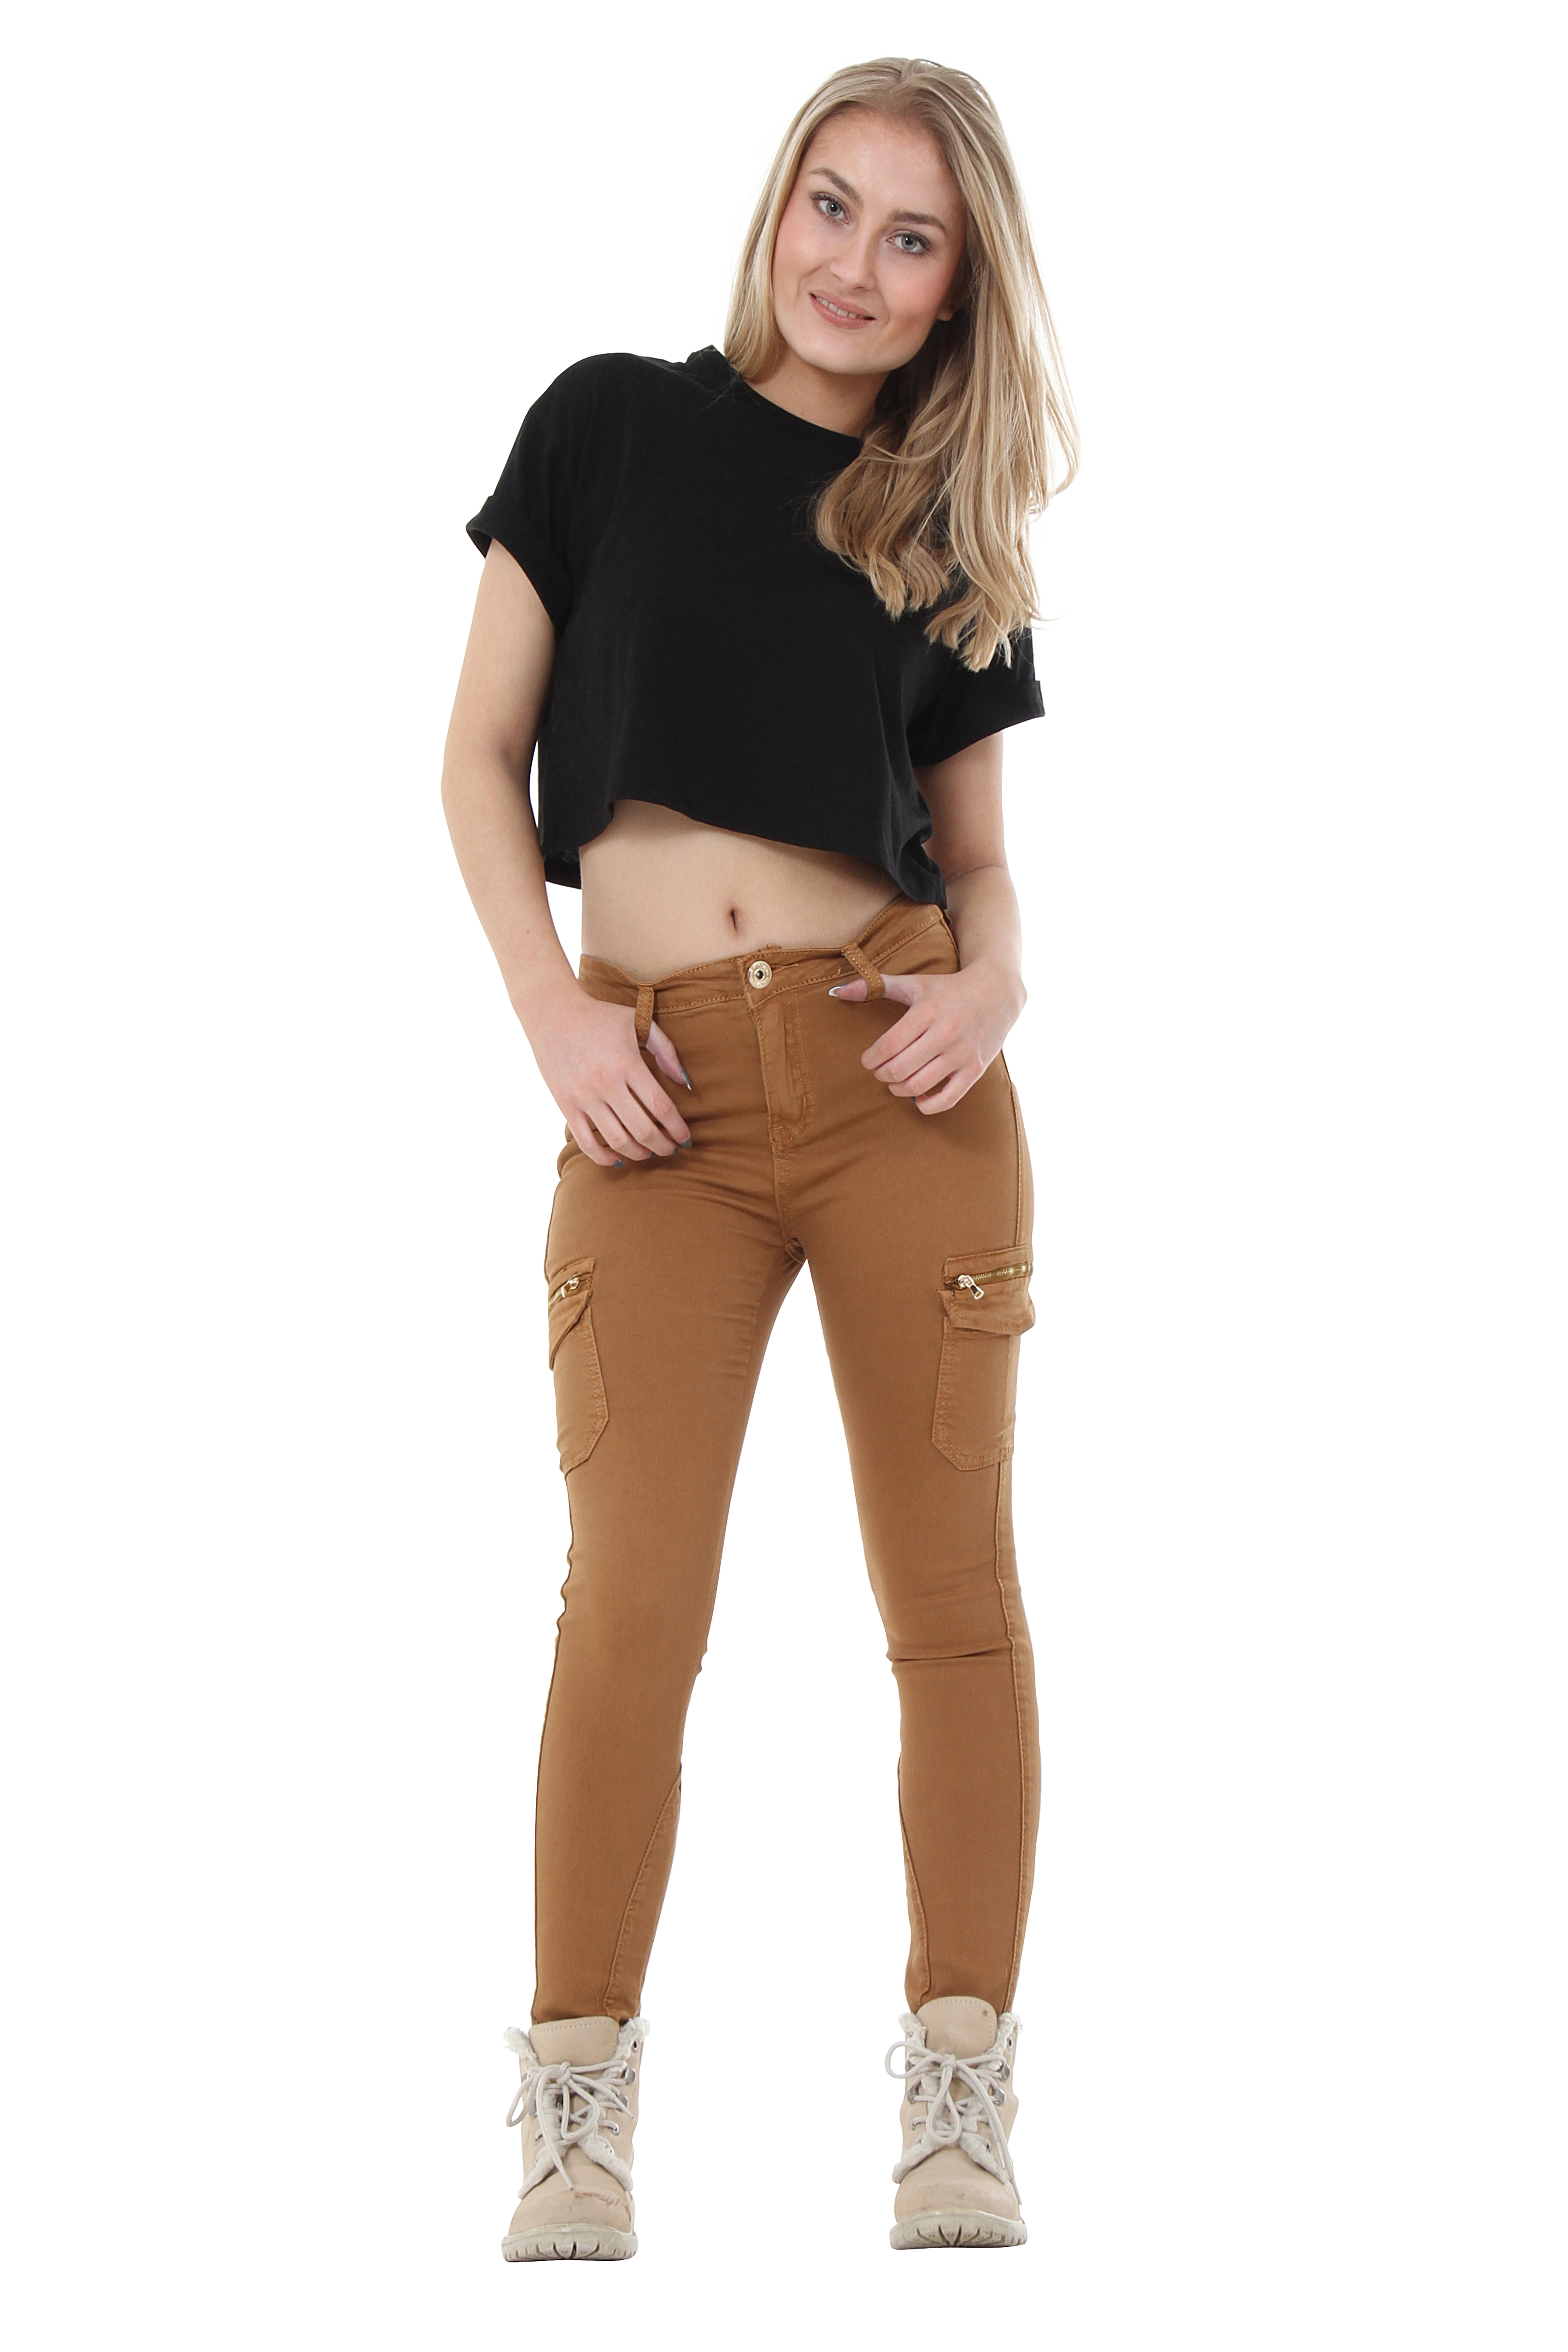 Our collection of petite jeans for women 5' 3